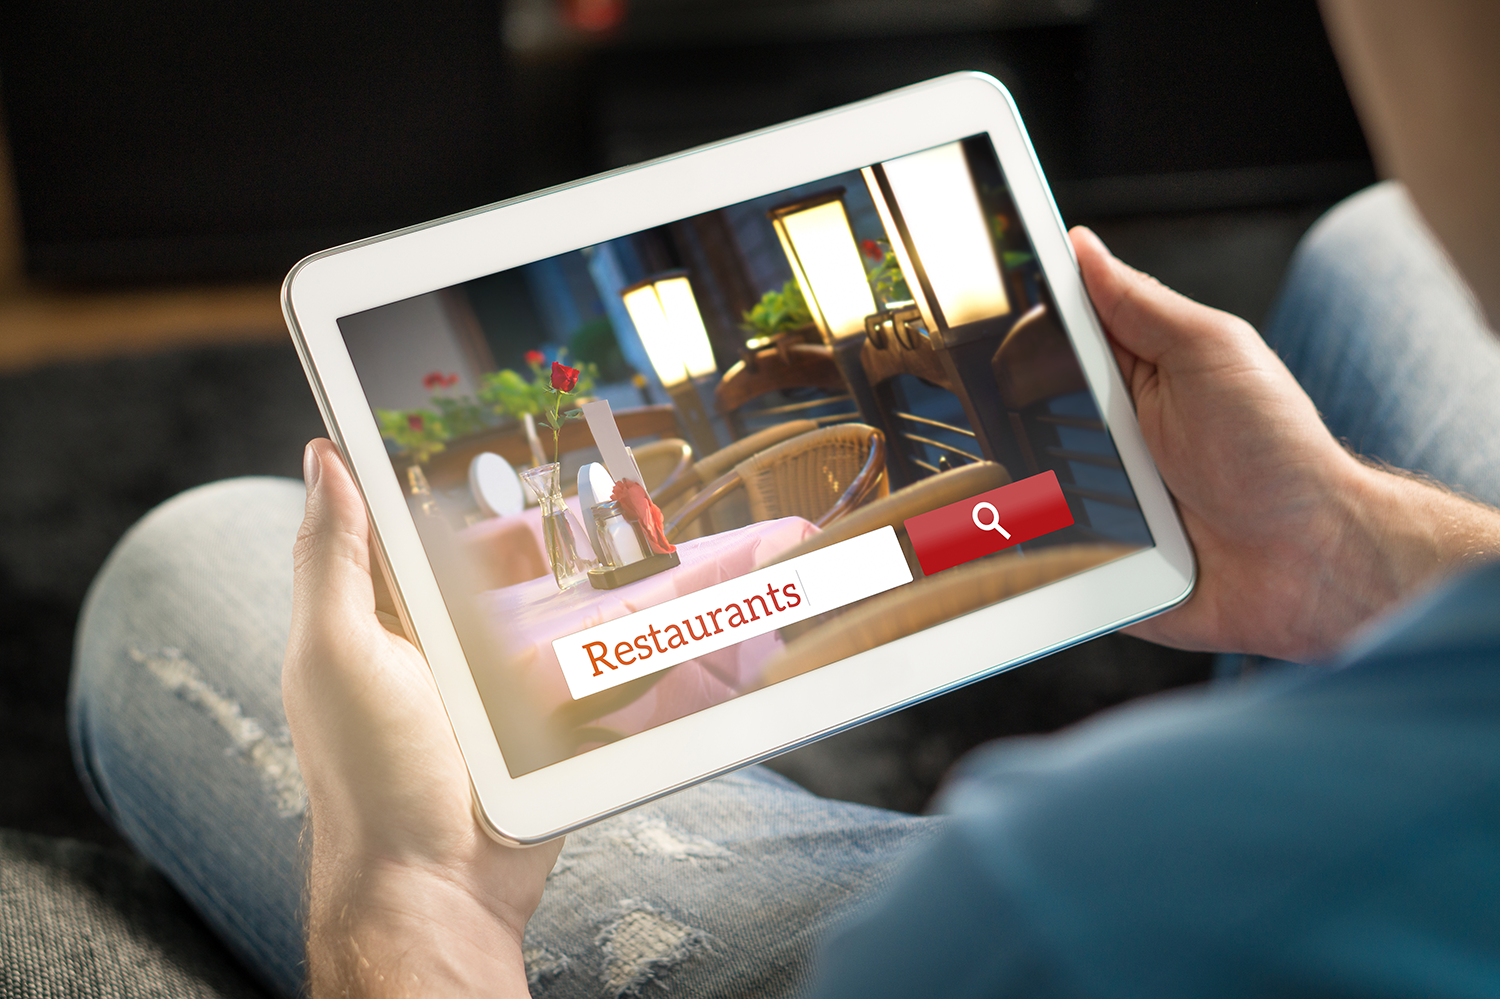 Restaurant review tip #2: get on restaurant review platforms.